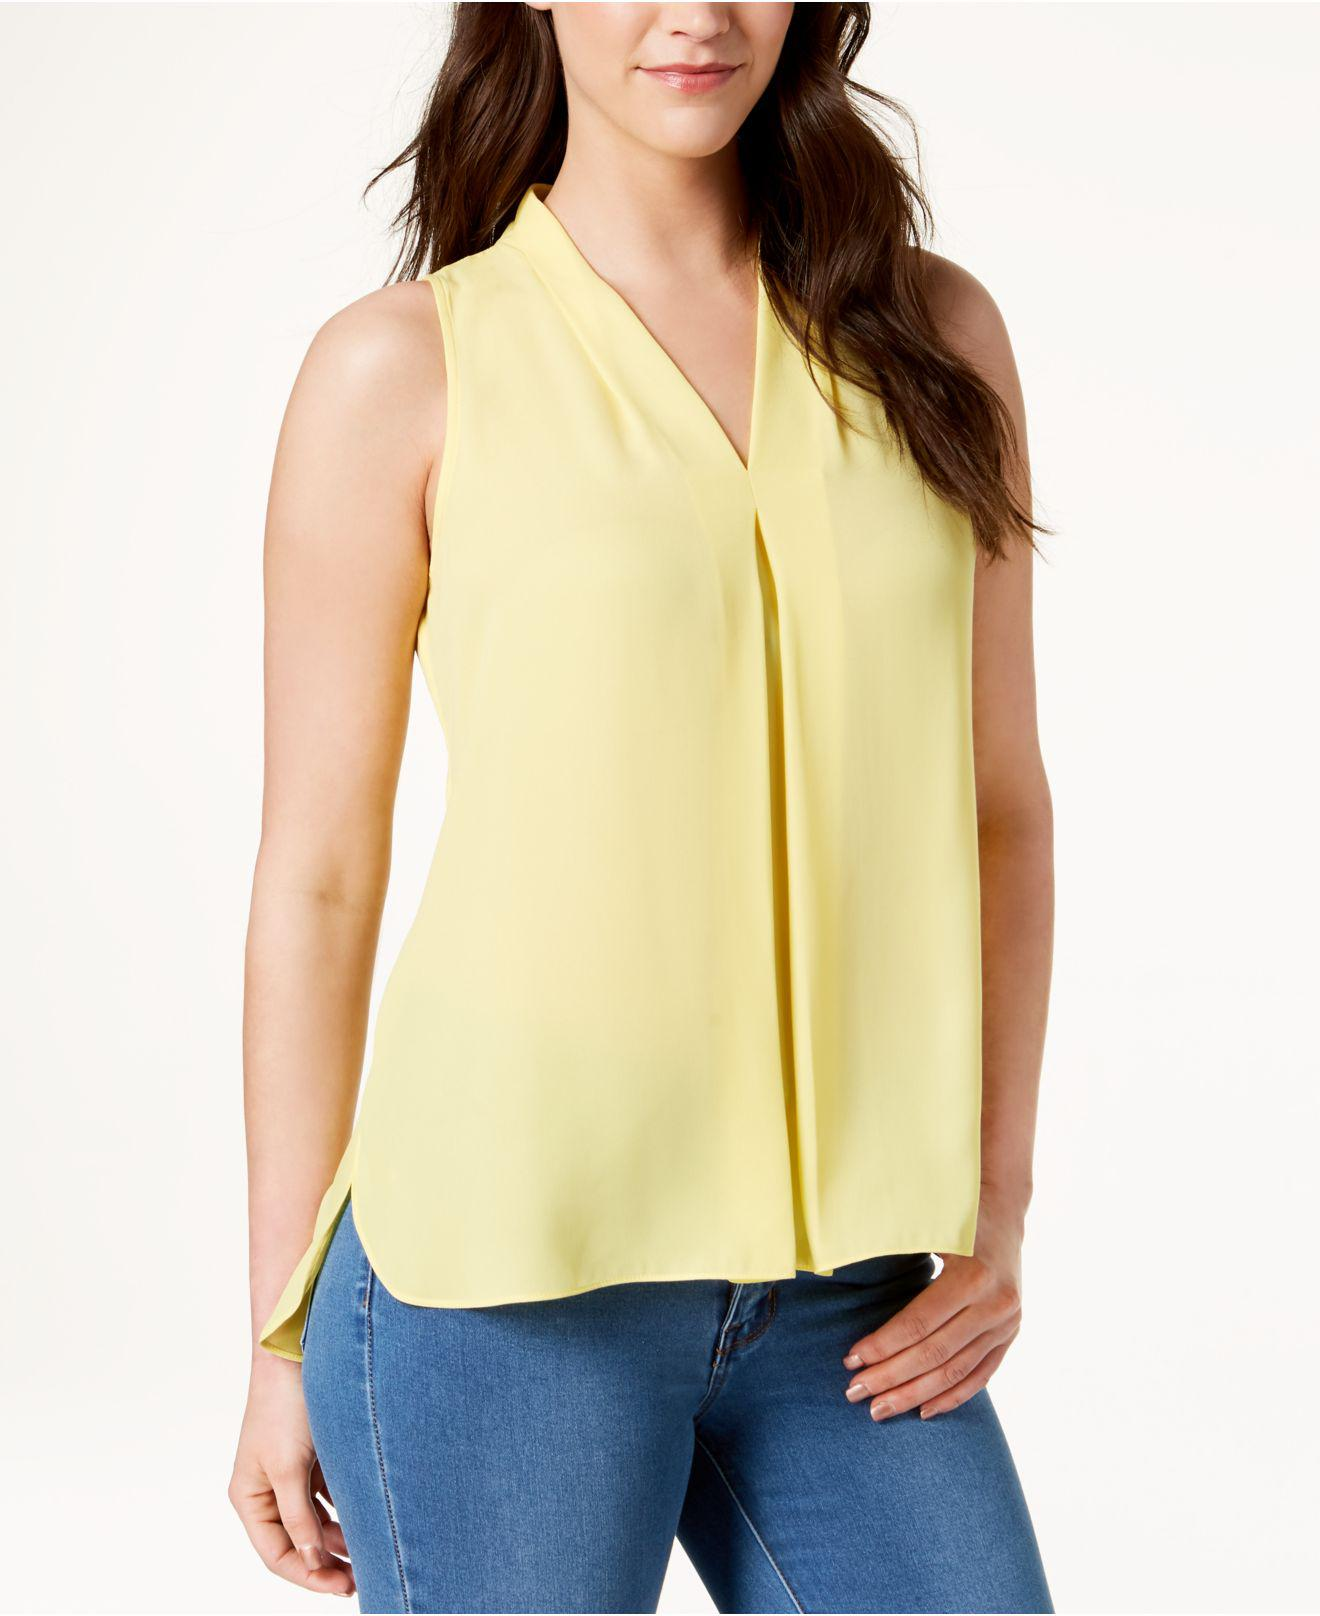 Vince Camuto Blouses At Macys